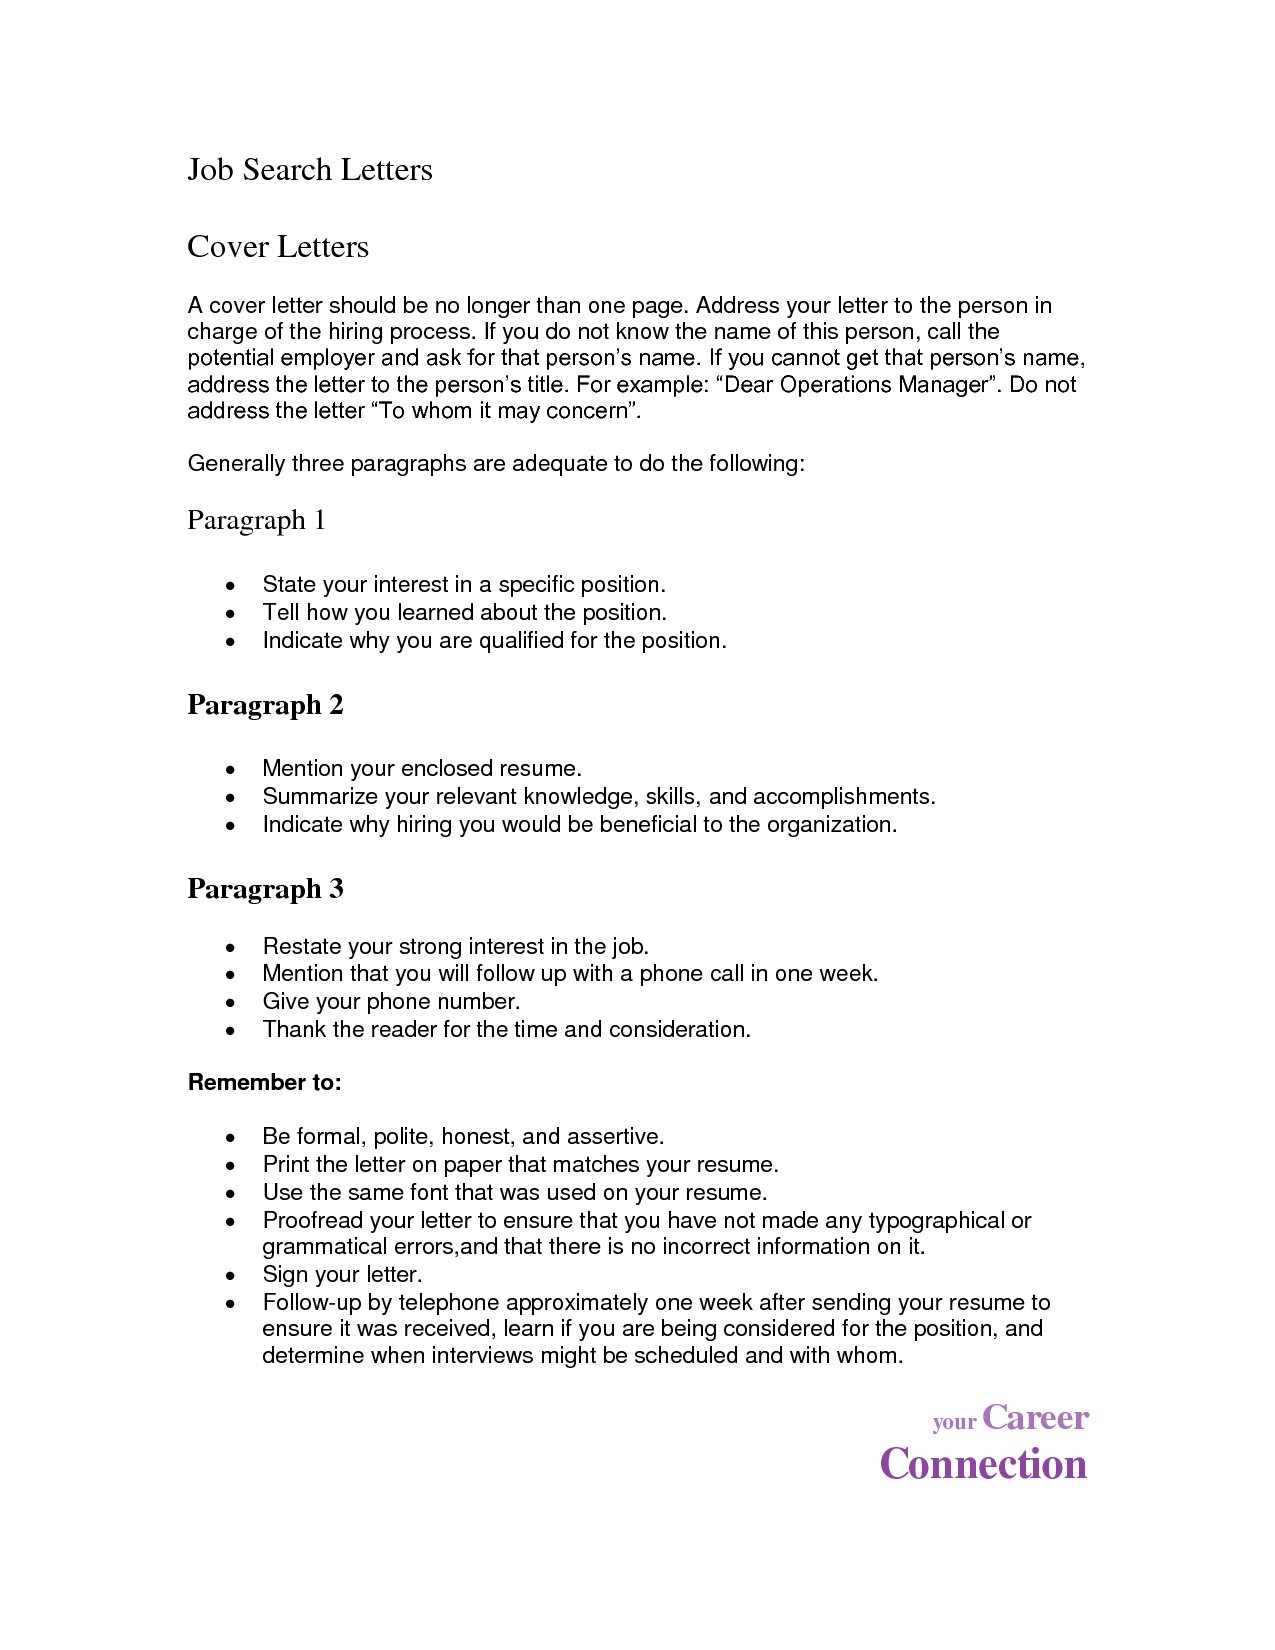 Chronological Resume Sample 1 One page resume